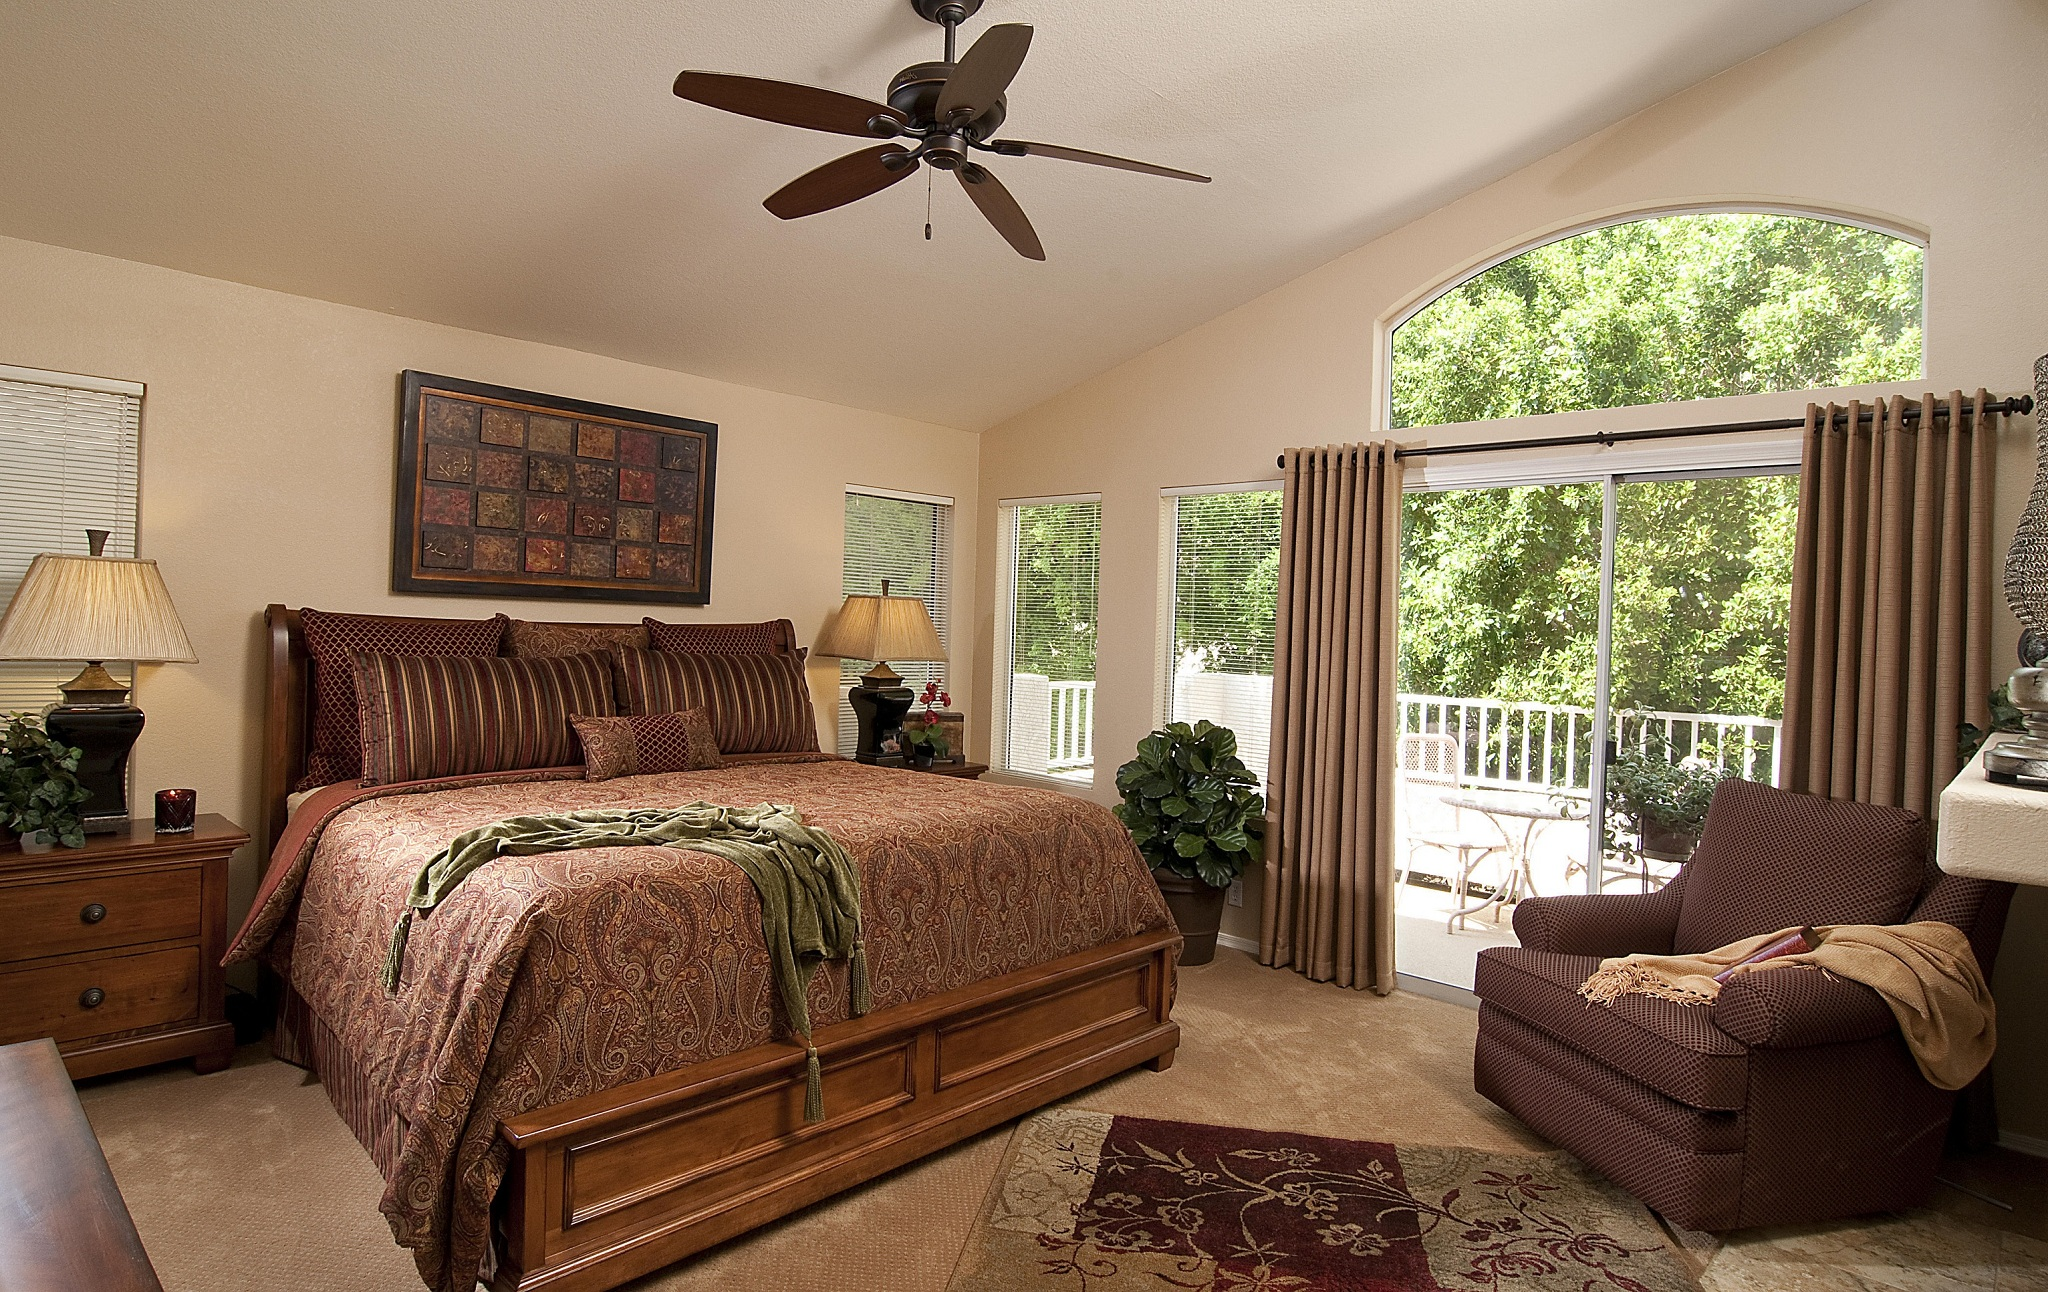 Traditional Bedroom Brown Theme Decor (Image 3 of 9)